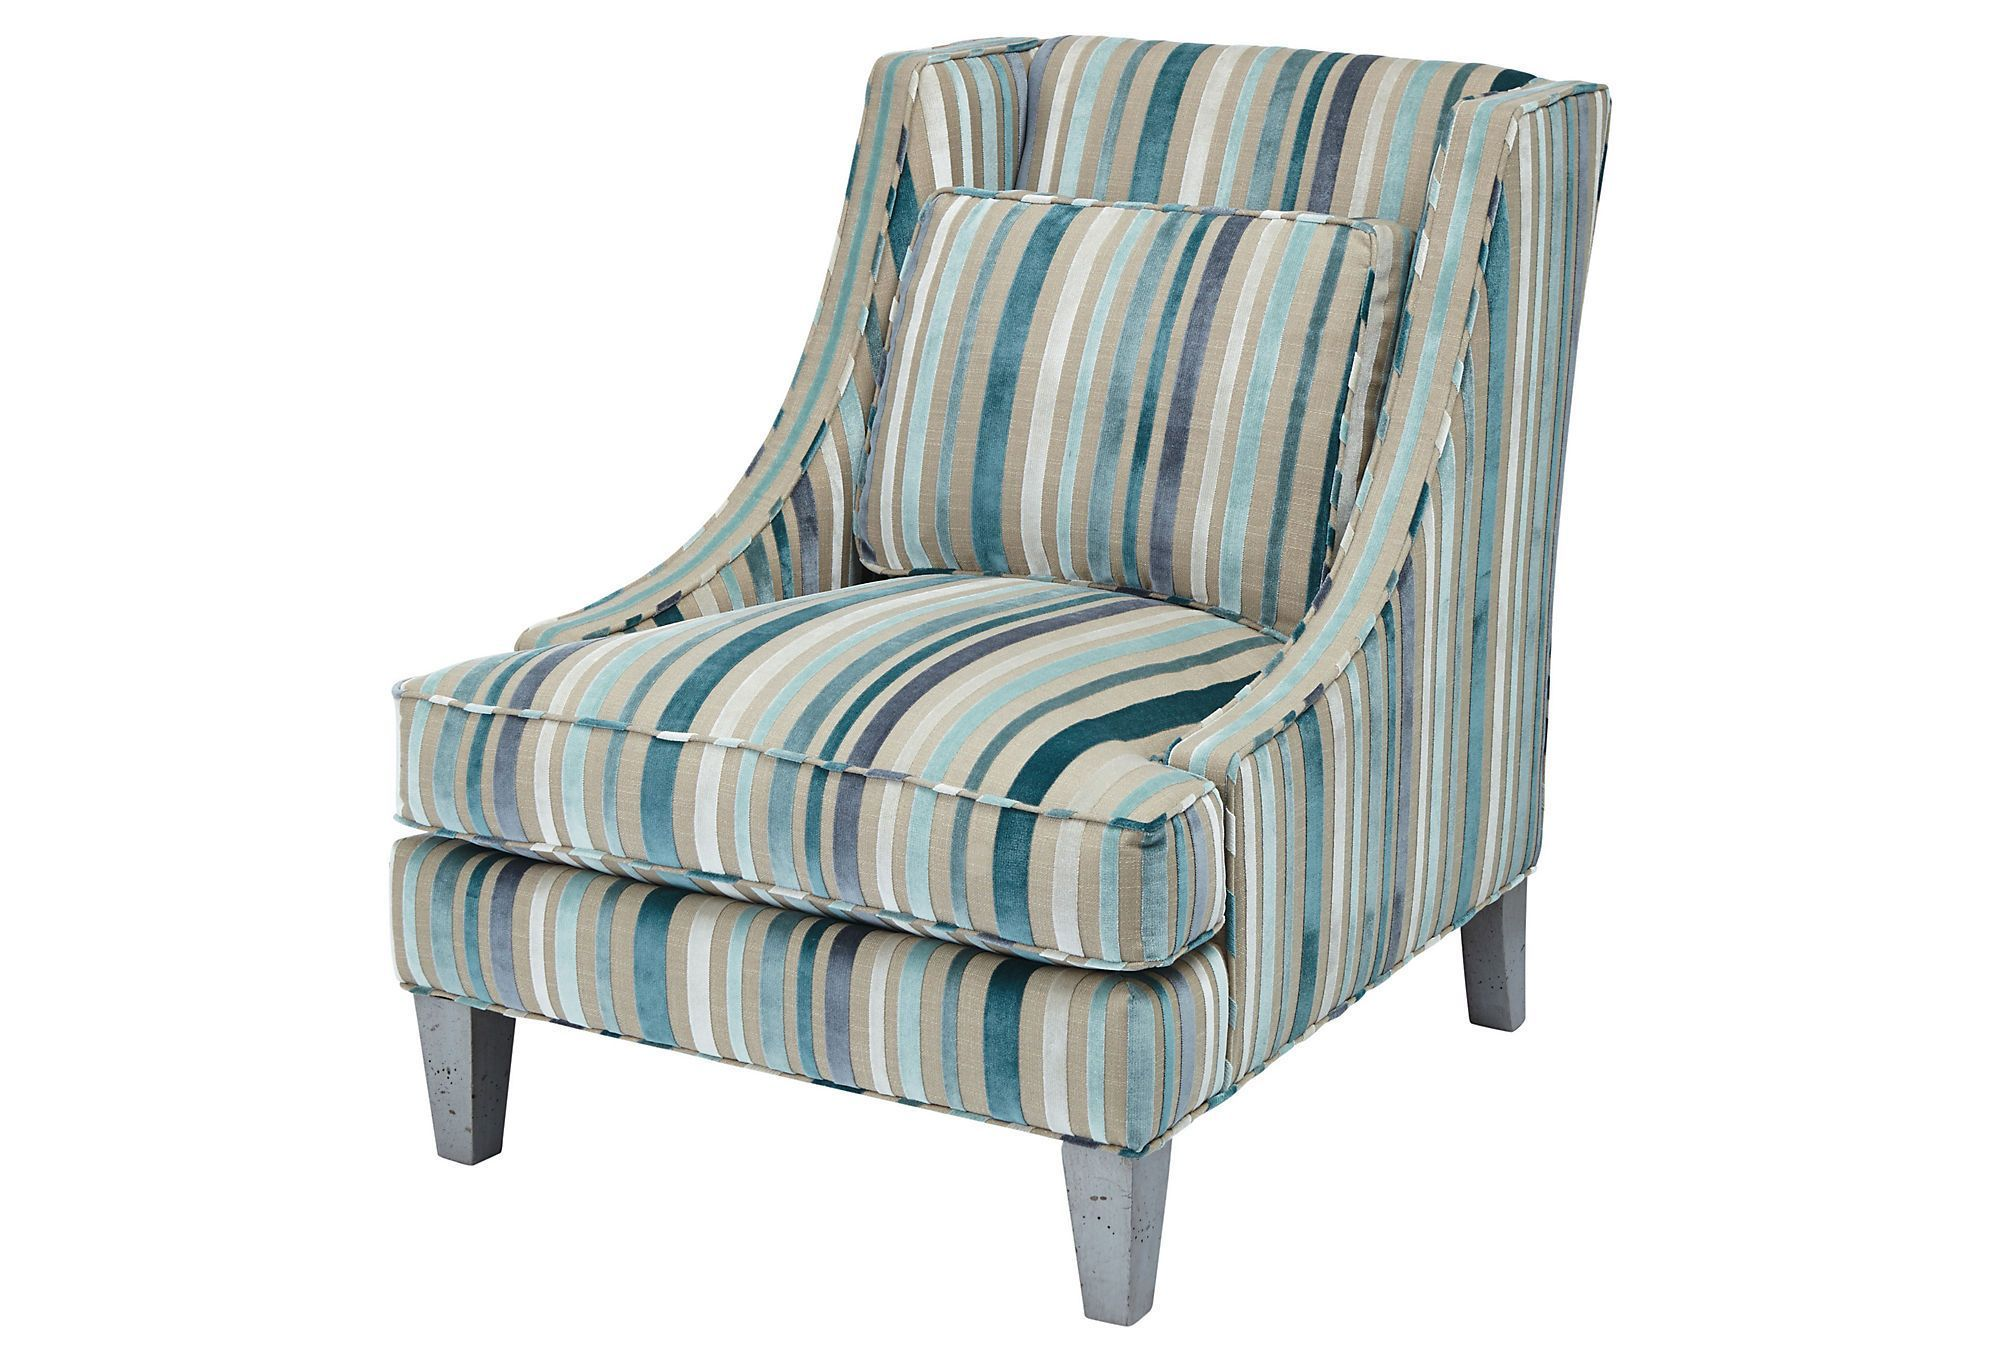 Best Joyce Textured Stripe Chair Gray Blue American Craftsmanship One Kings Lane With Images 400 x 300